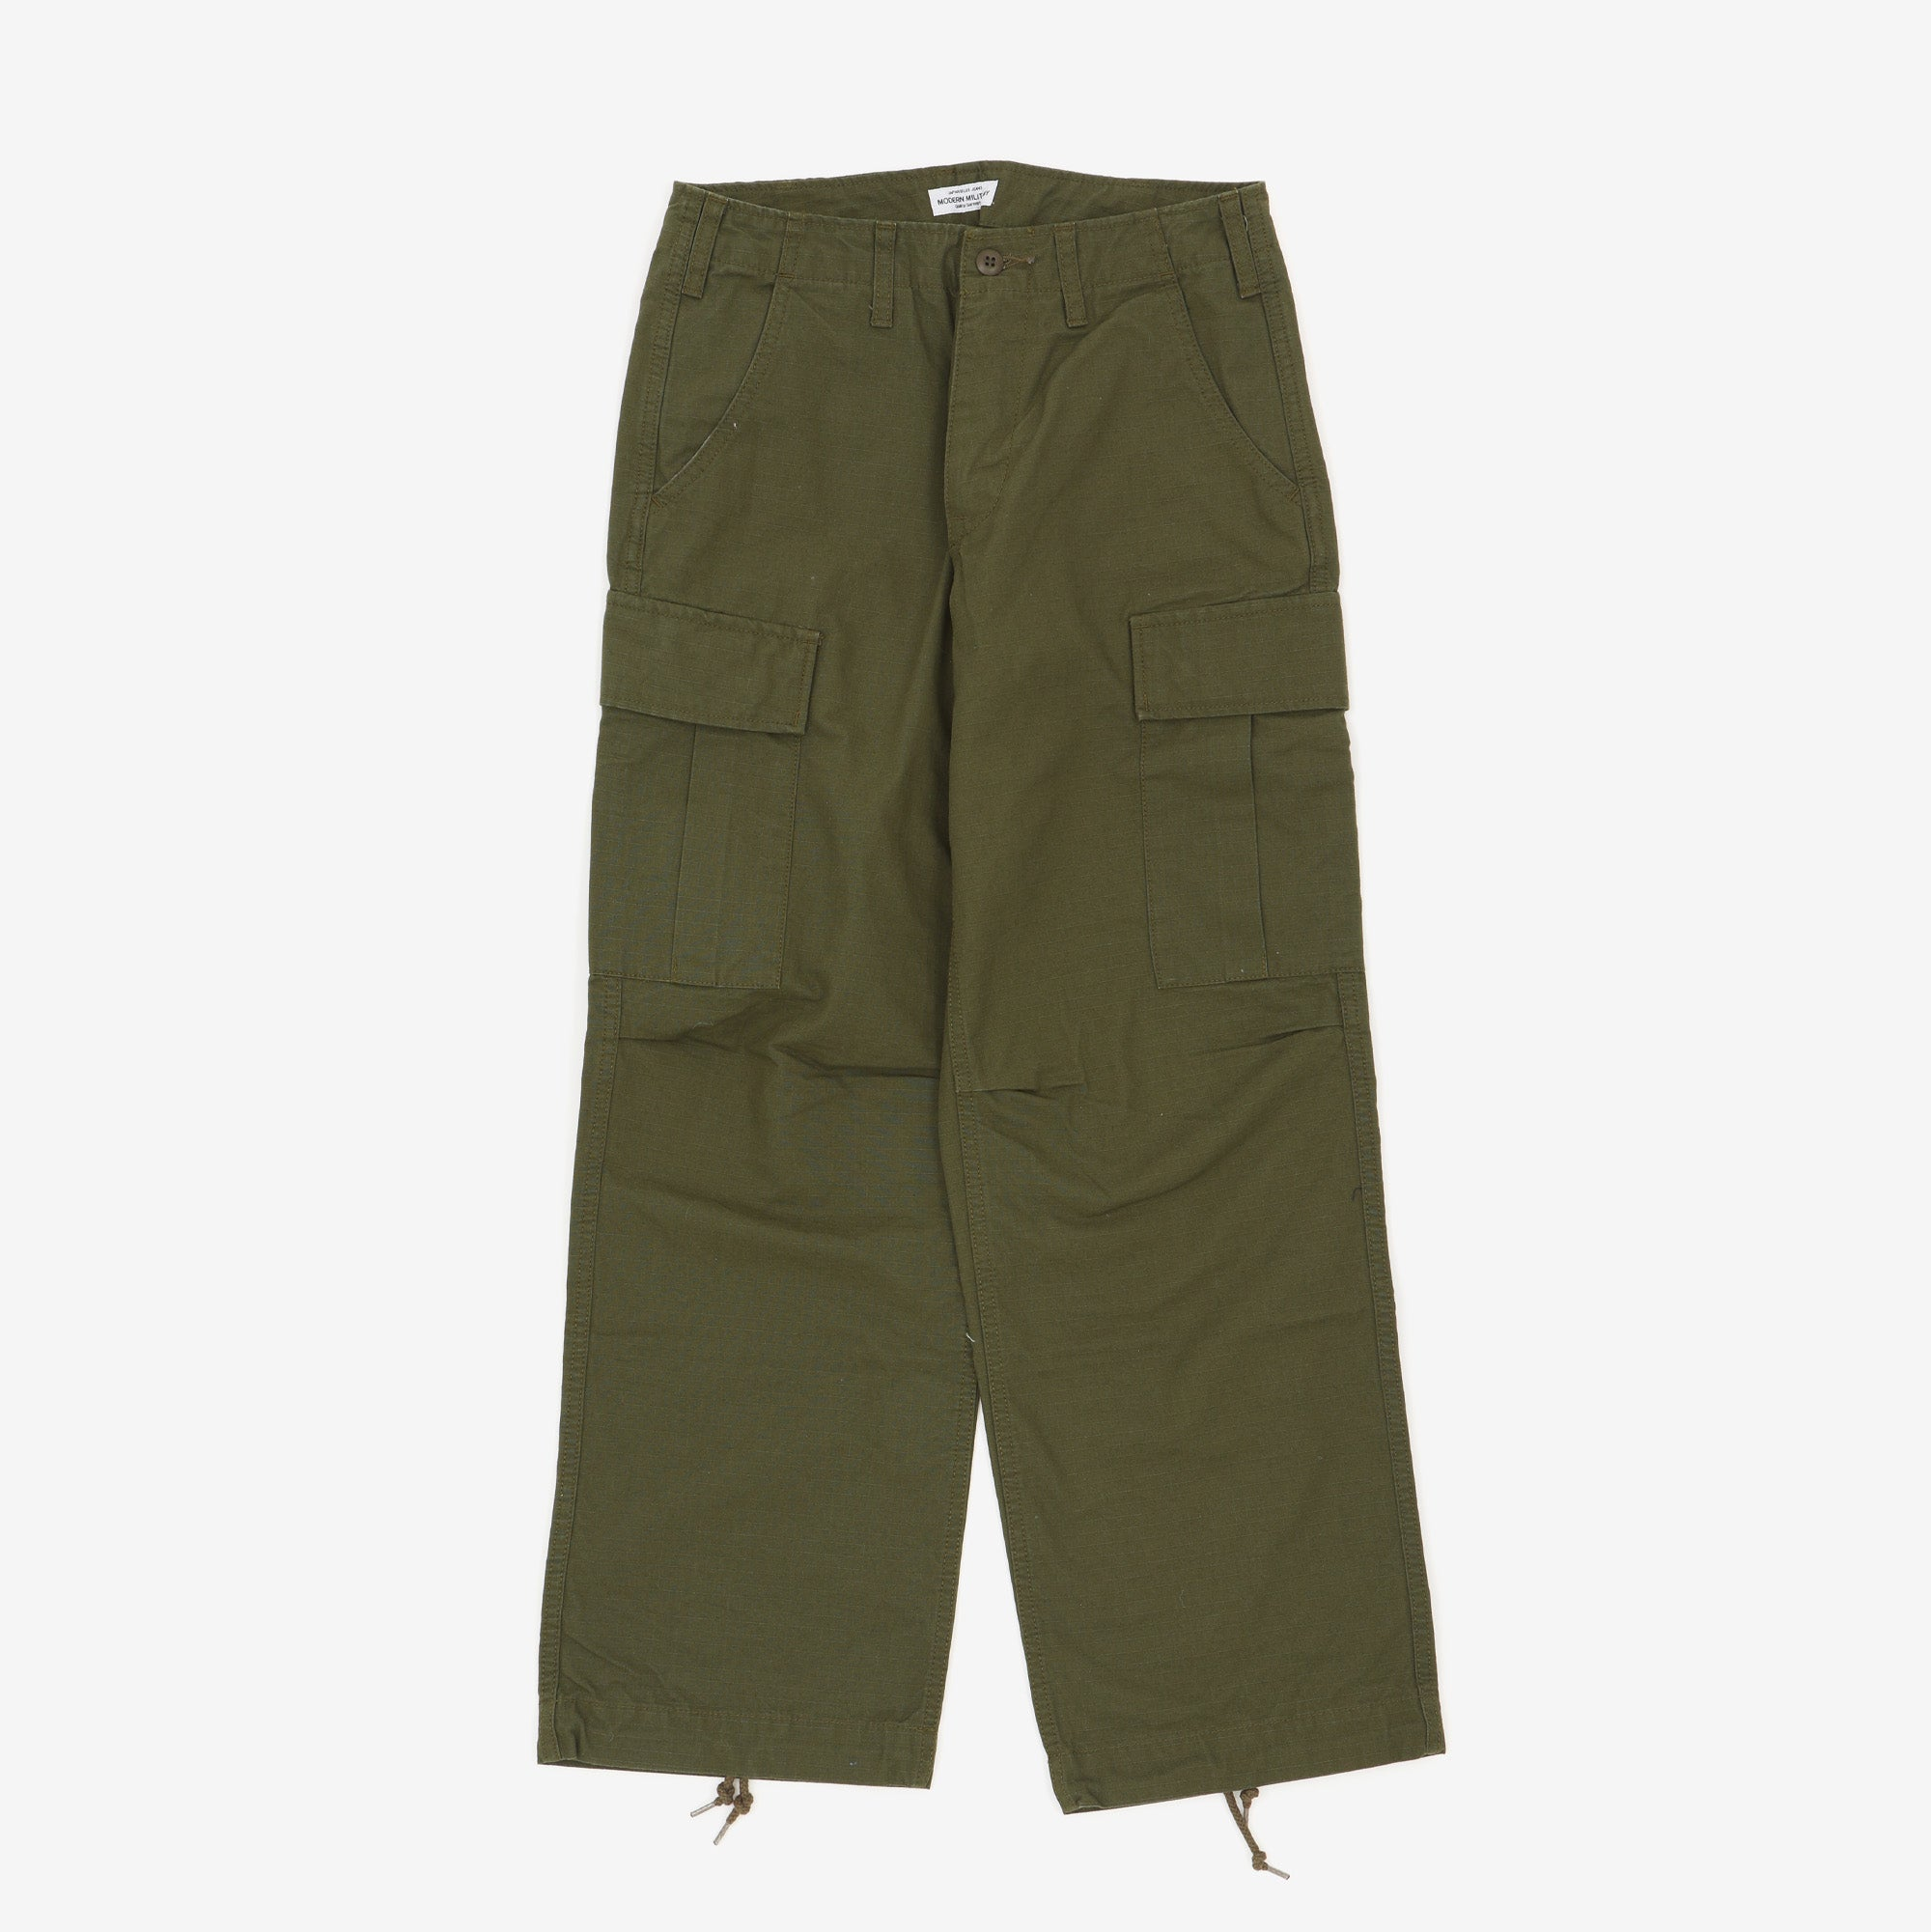 Modern Military Ripstop Cargo Pants